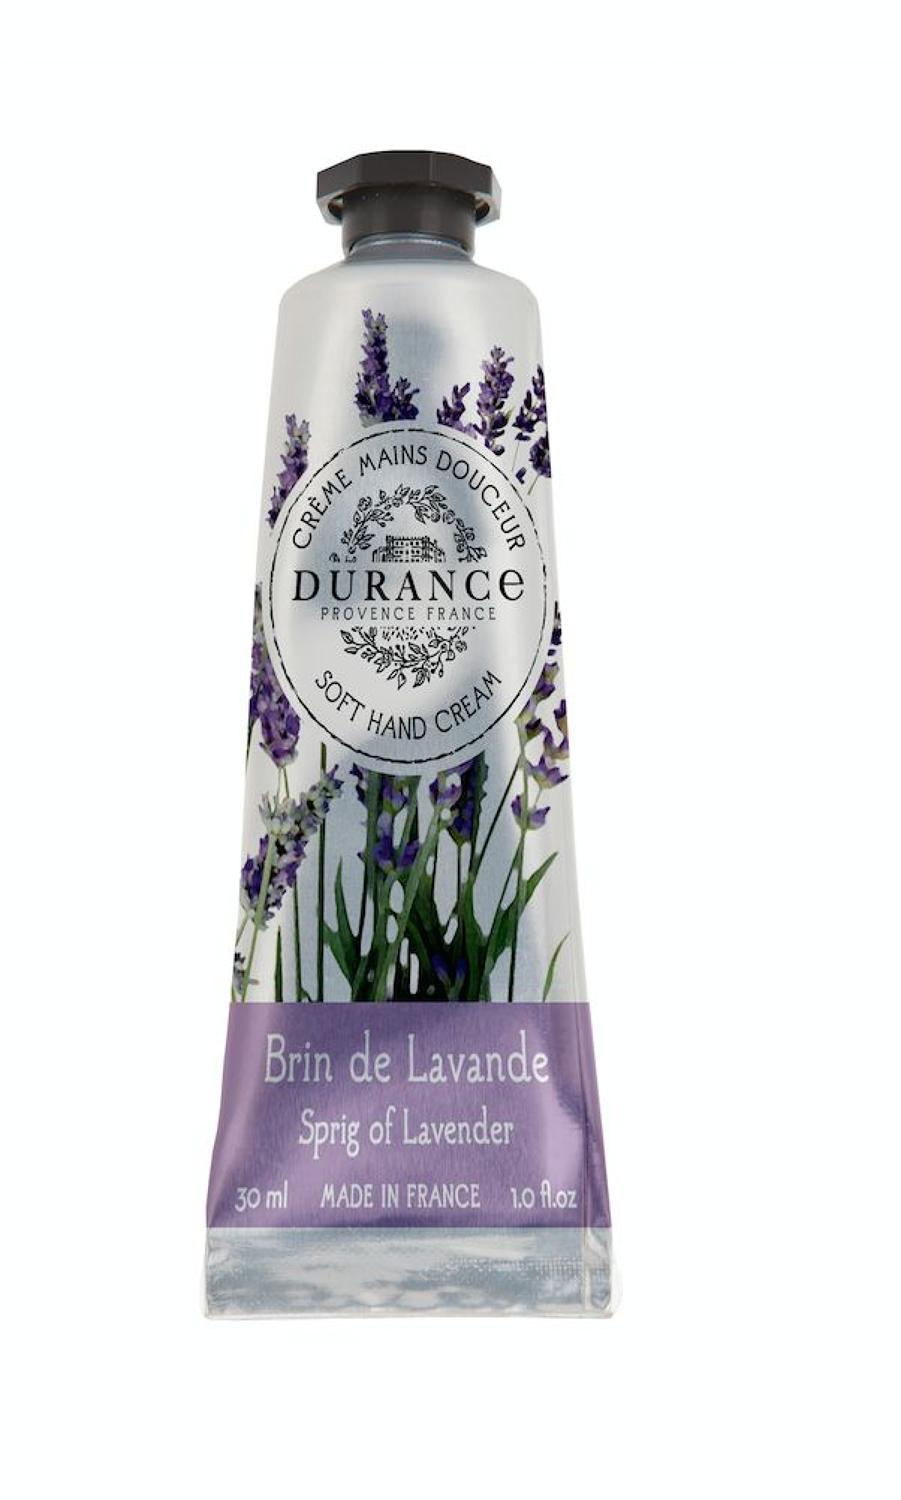 Soft Hand Cream 30ml Sprig of Lavender